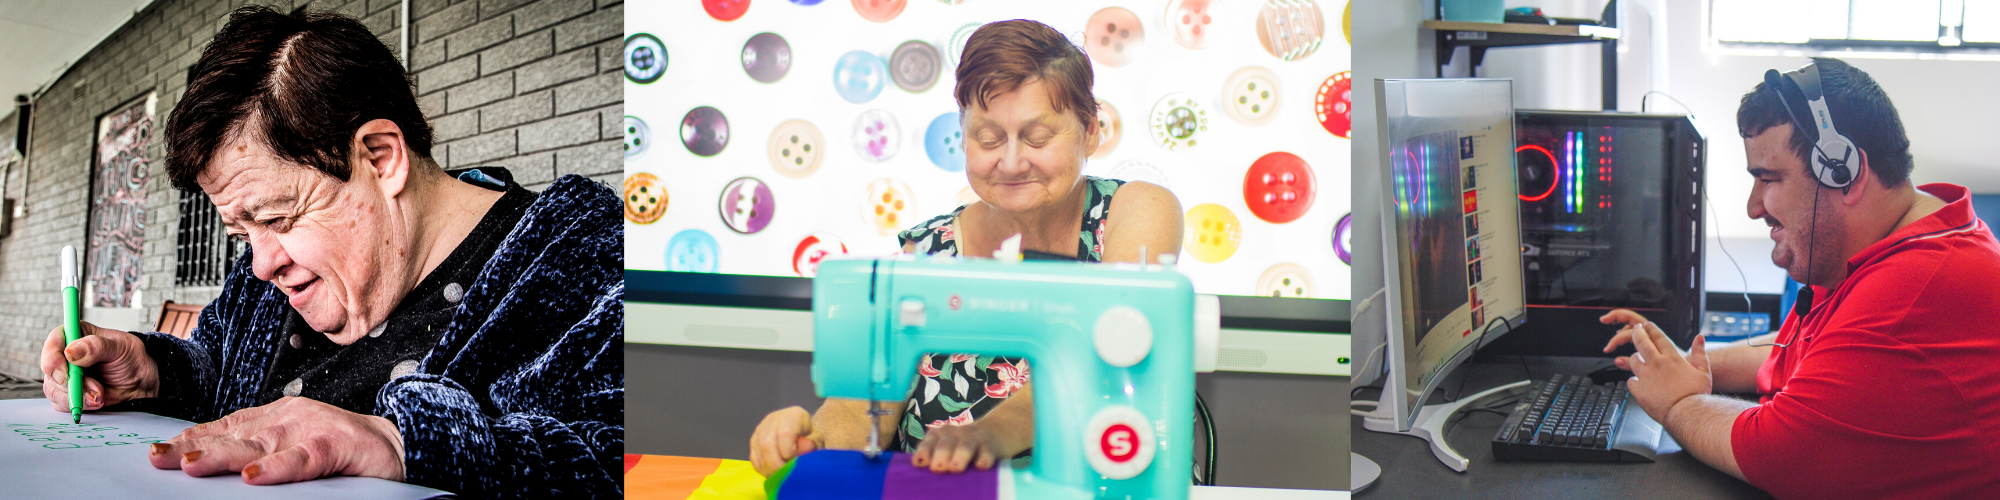 Civic disabled clients learning new skills